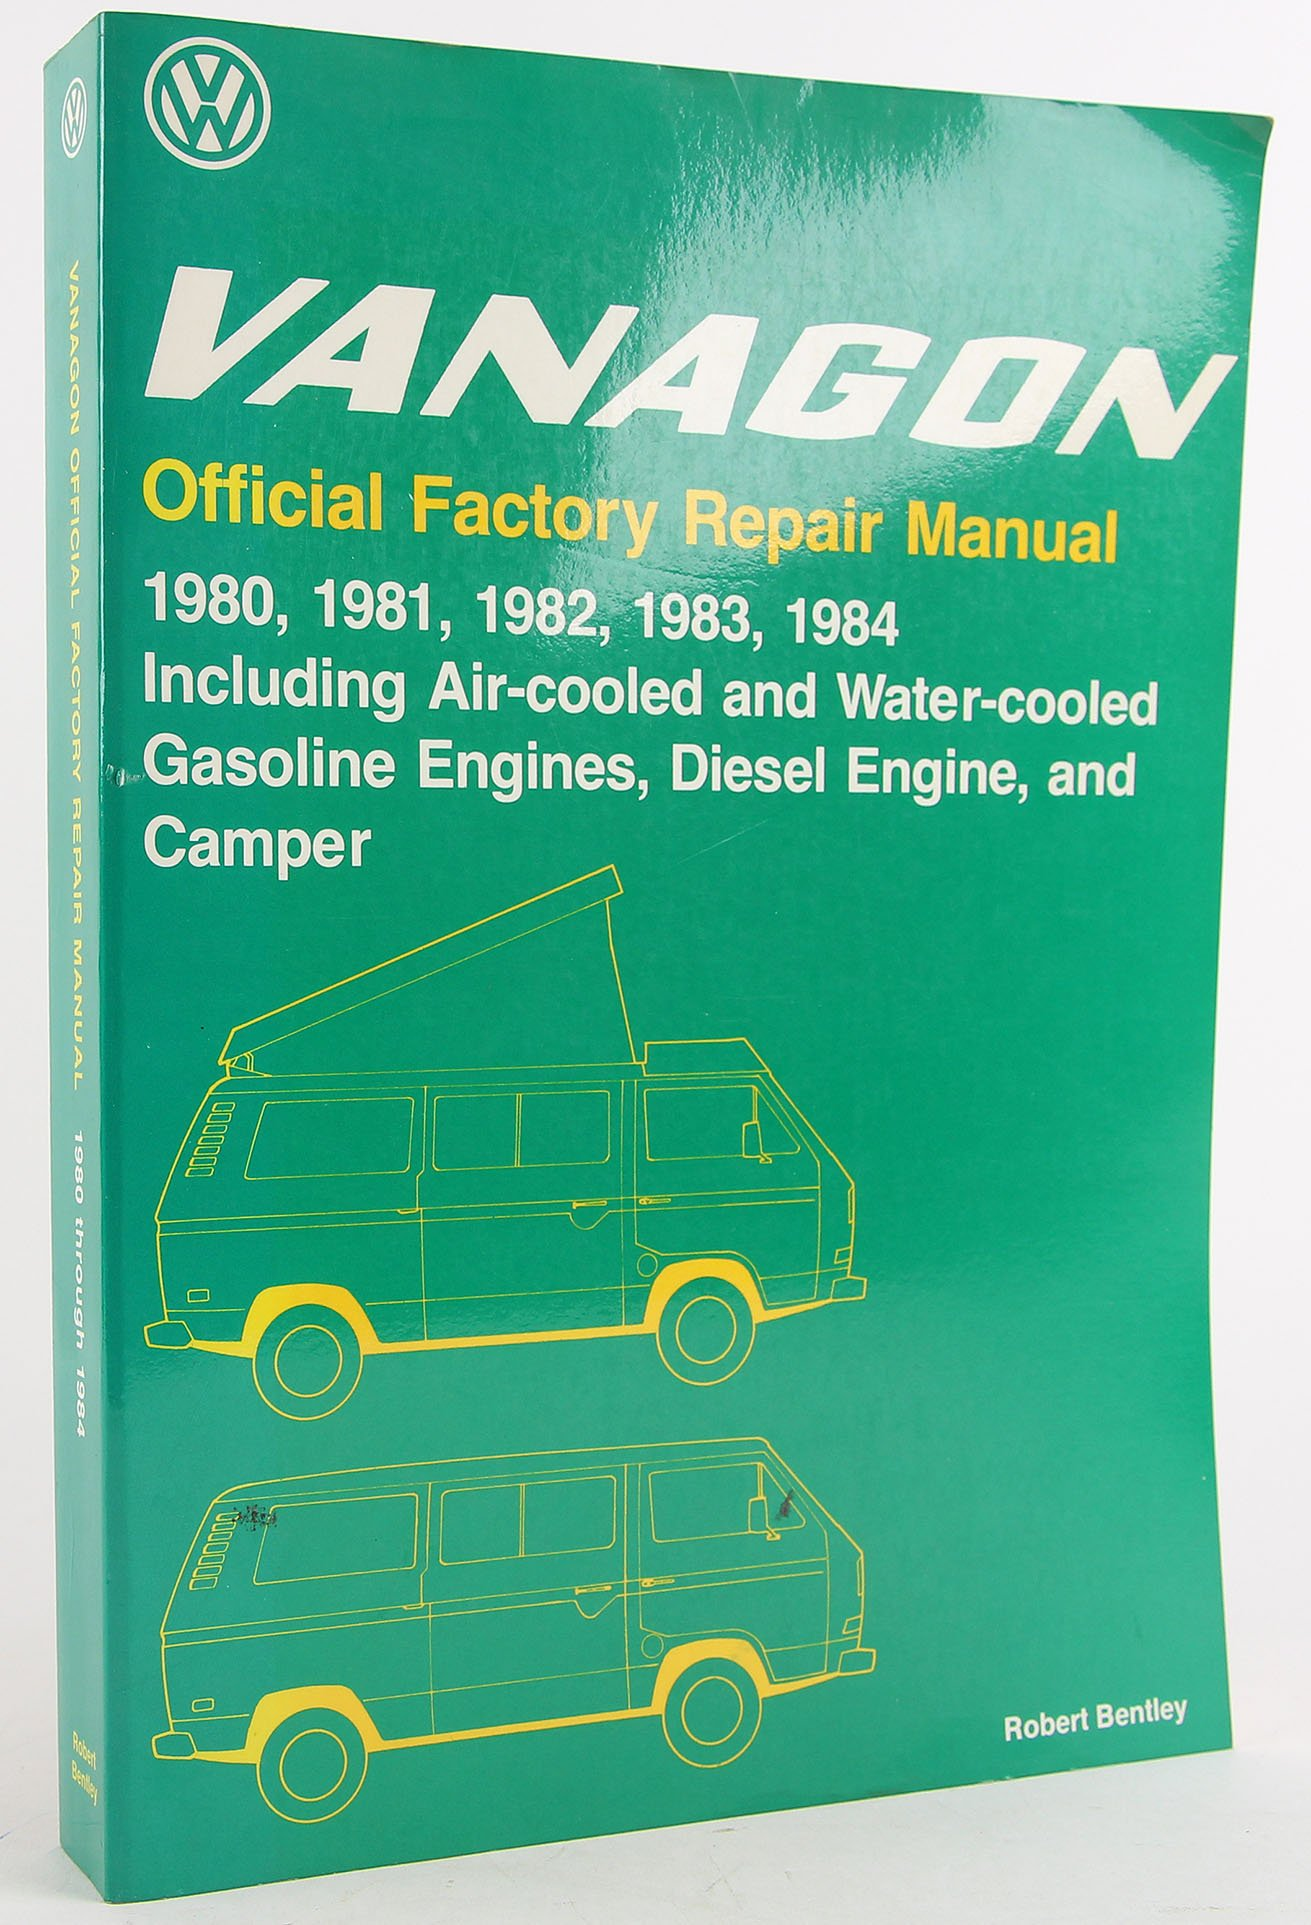 Volkswagen Vanagon official factory repair manual: 1980, 1981, 1982, 1983,  1984, including air-cooled and water-cooled gasoline engines, diesel .